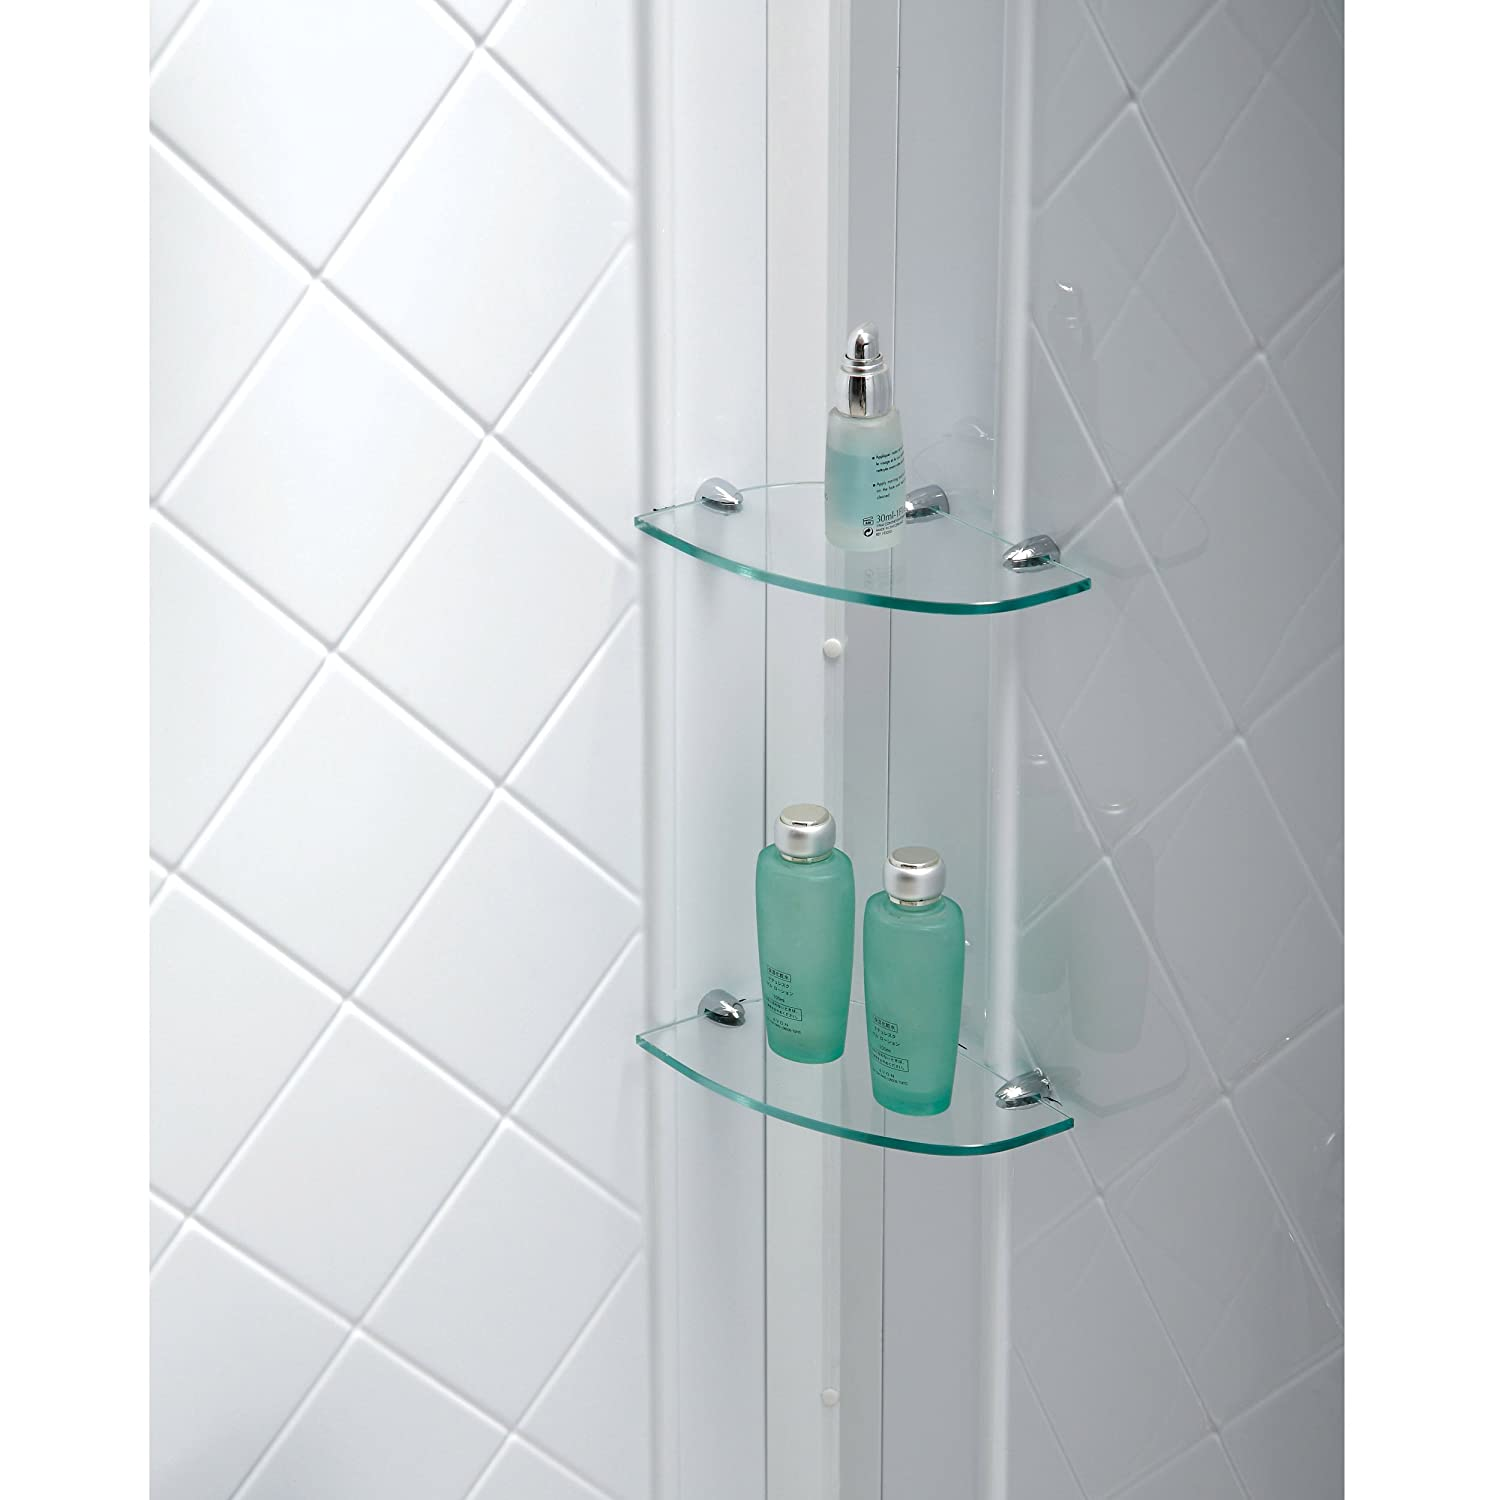 DreamLine QWALL-Tub Backwall Kit, SHBW-1360603-01 - Shower Wall ...